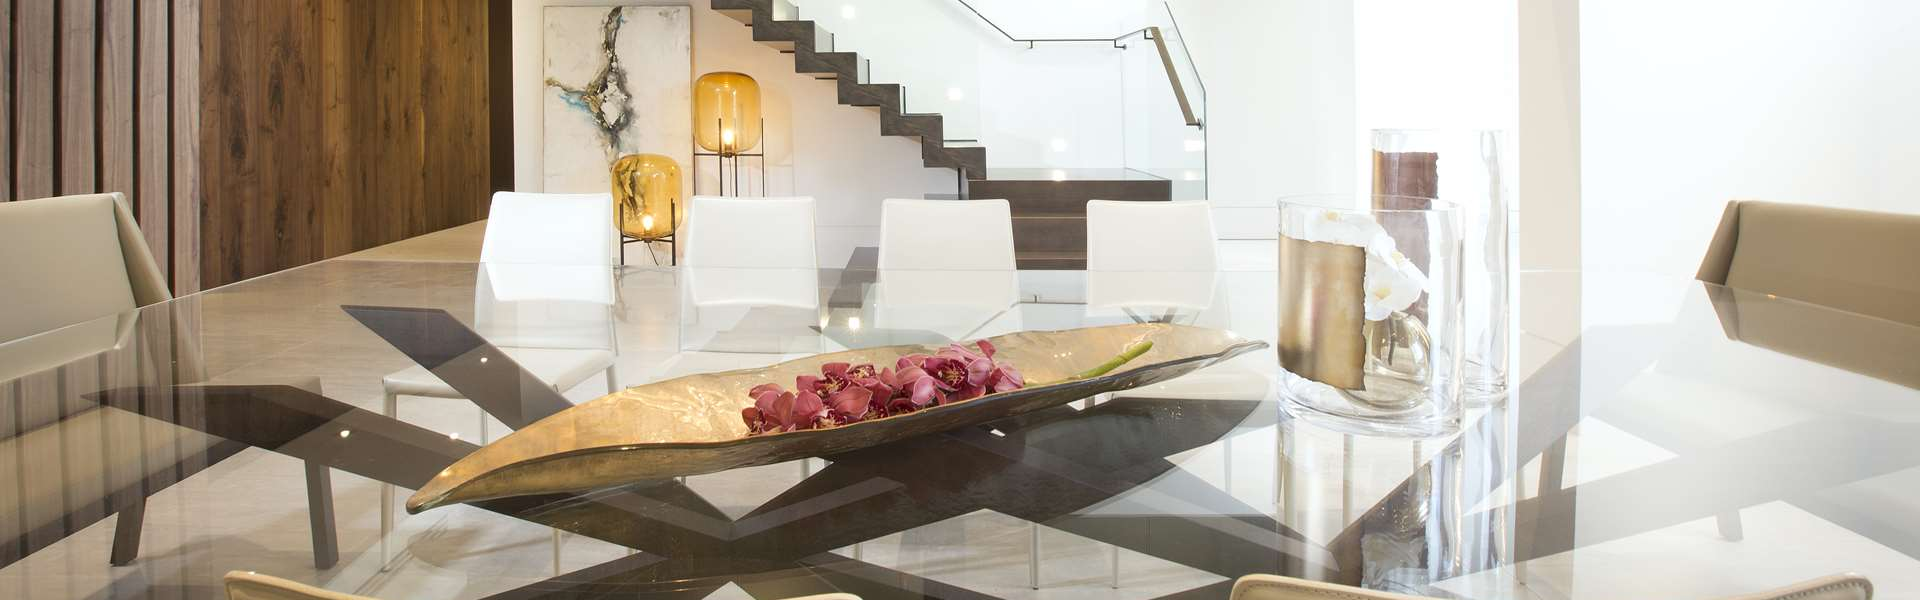 Dkor interiors miami residential interior design firm for Residential interior design firms